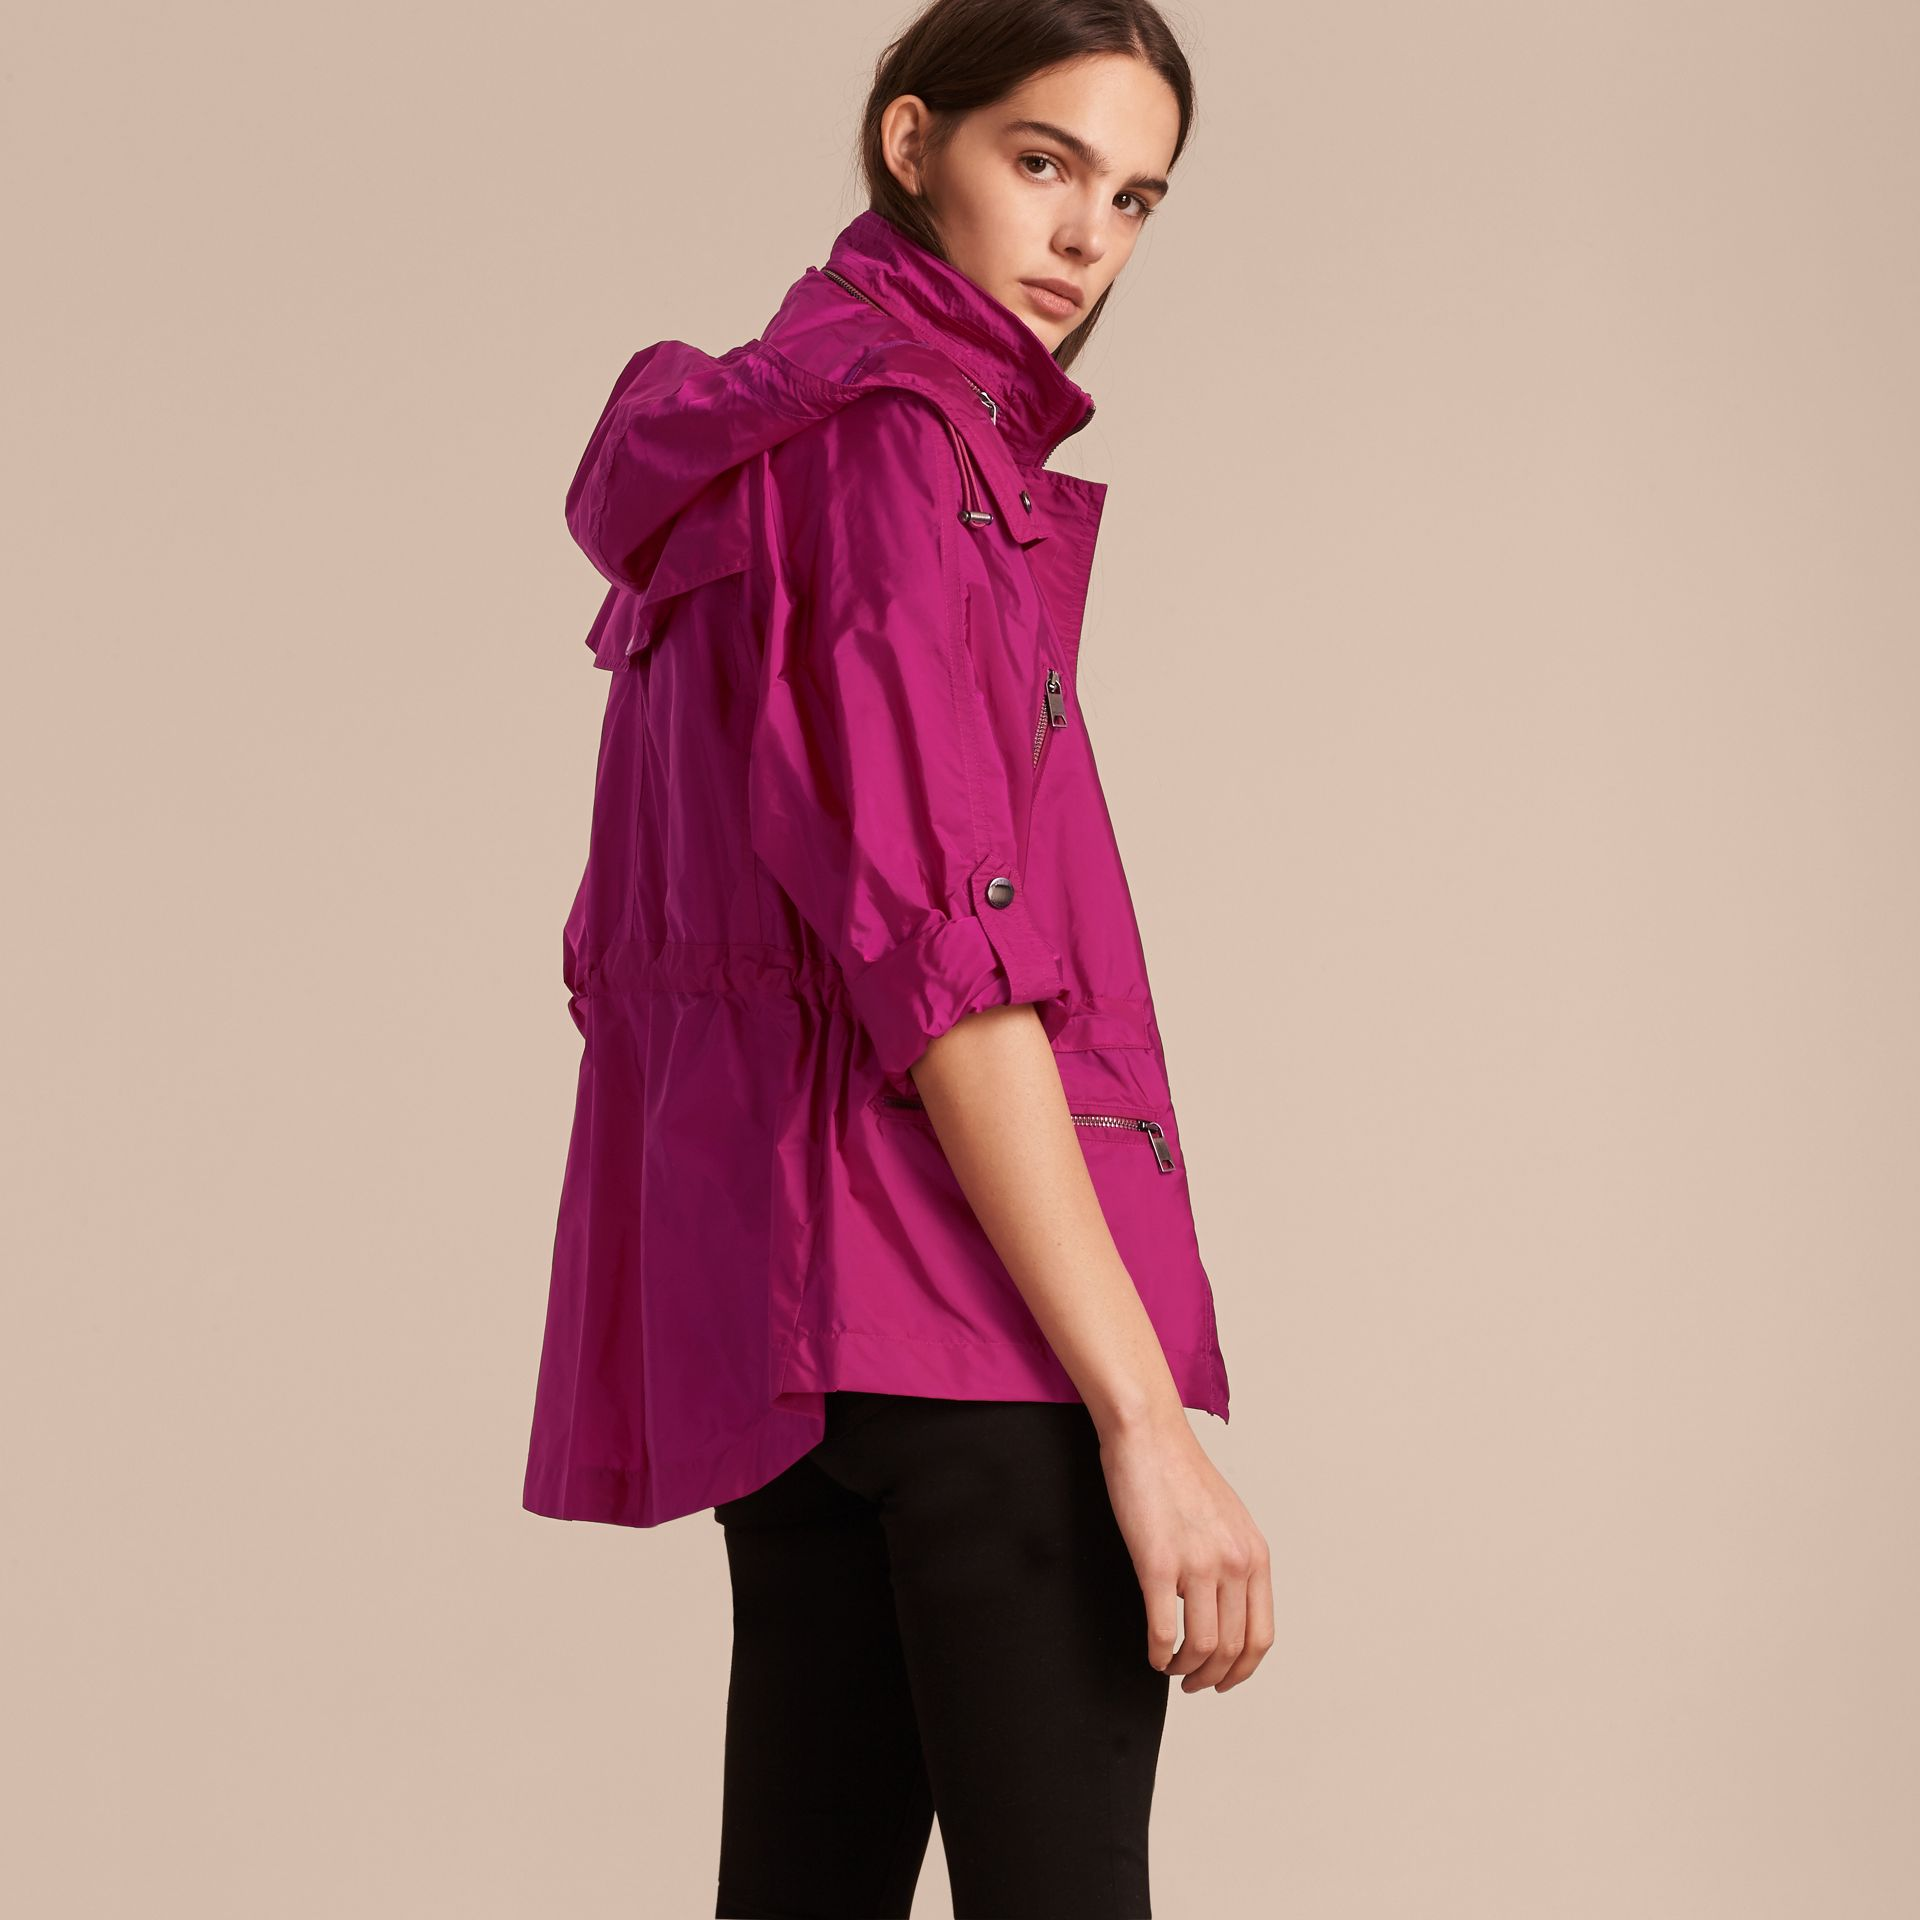 Showerproof Parka Jacket with Packaway Hood in Fuchsia - gallery image 3